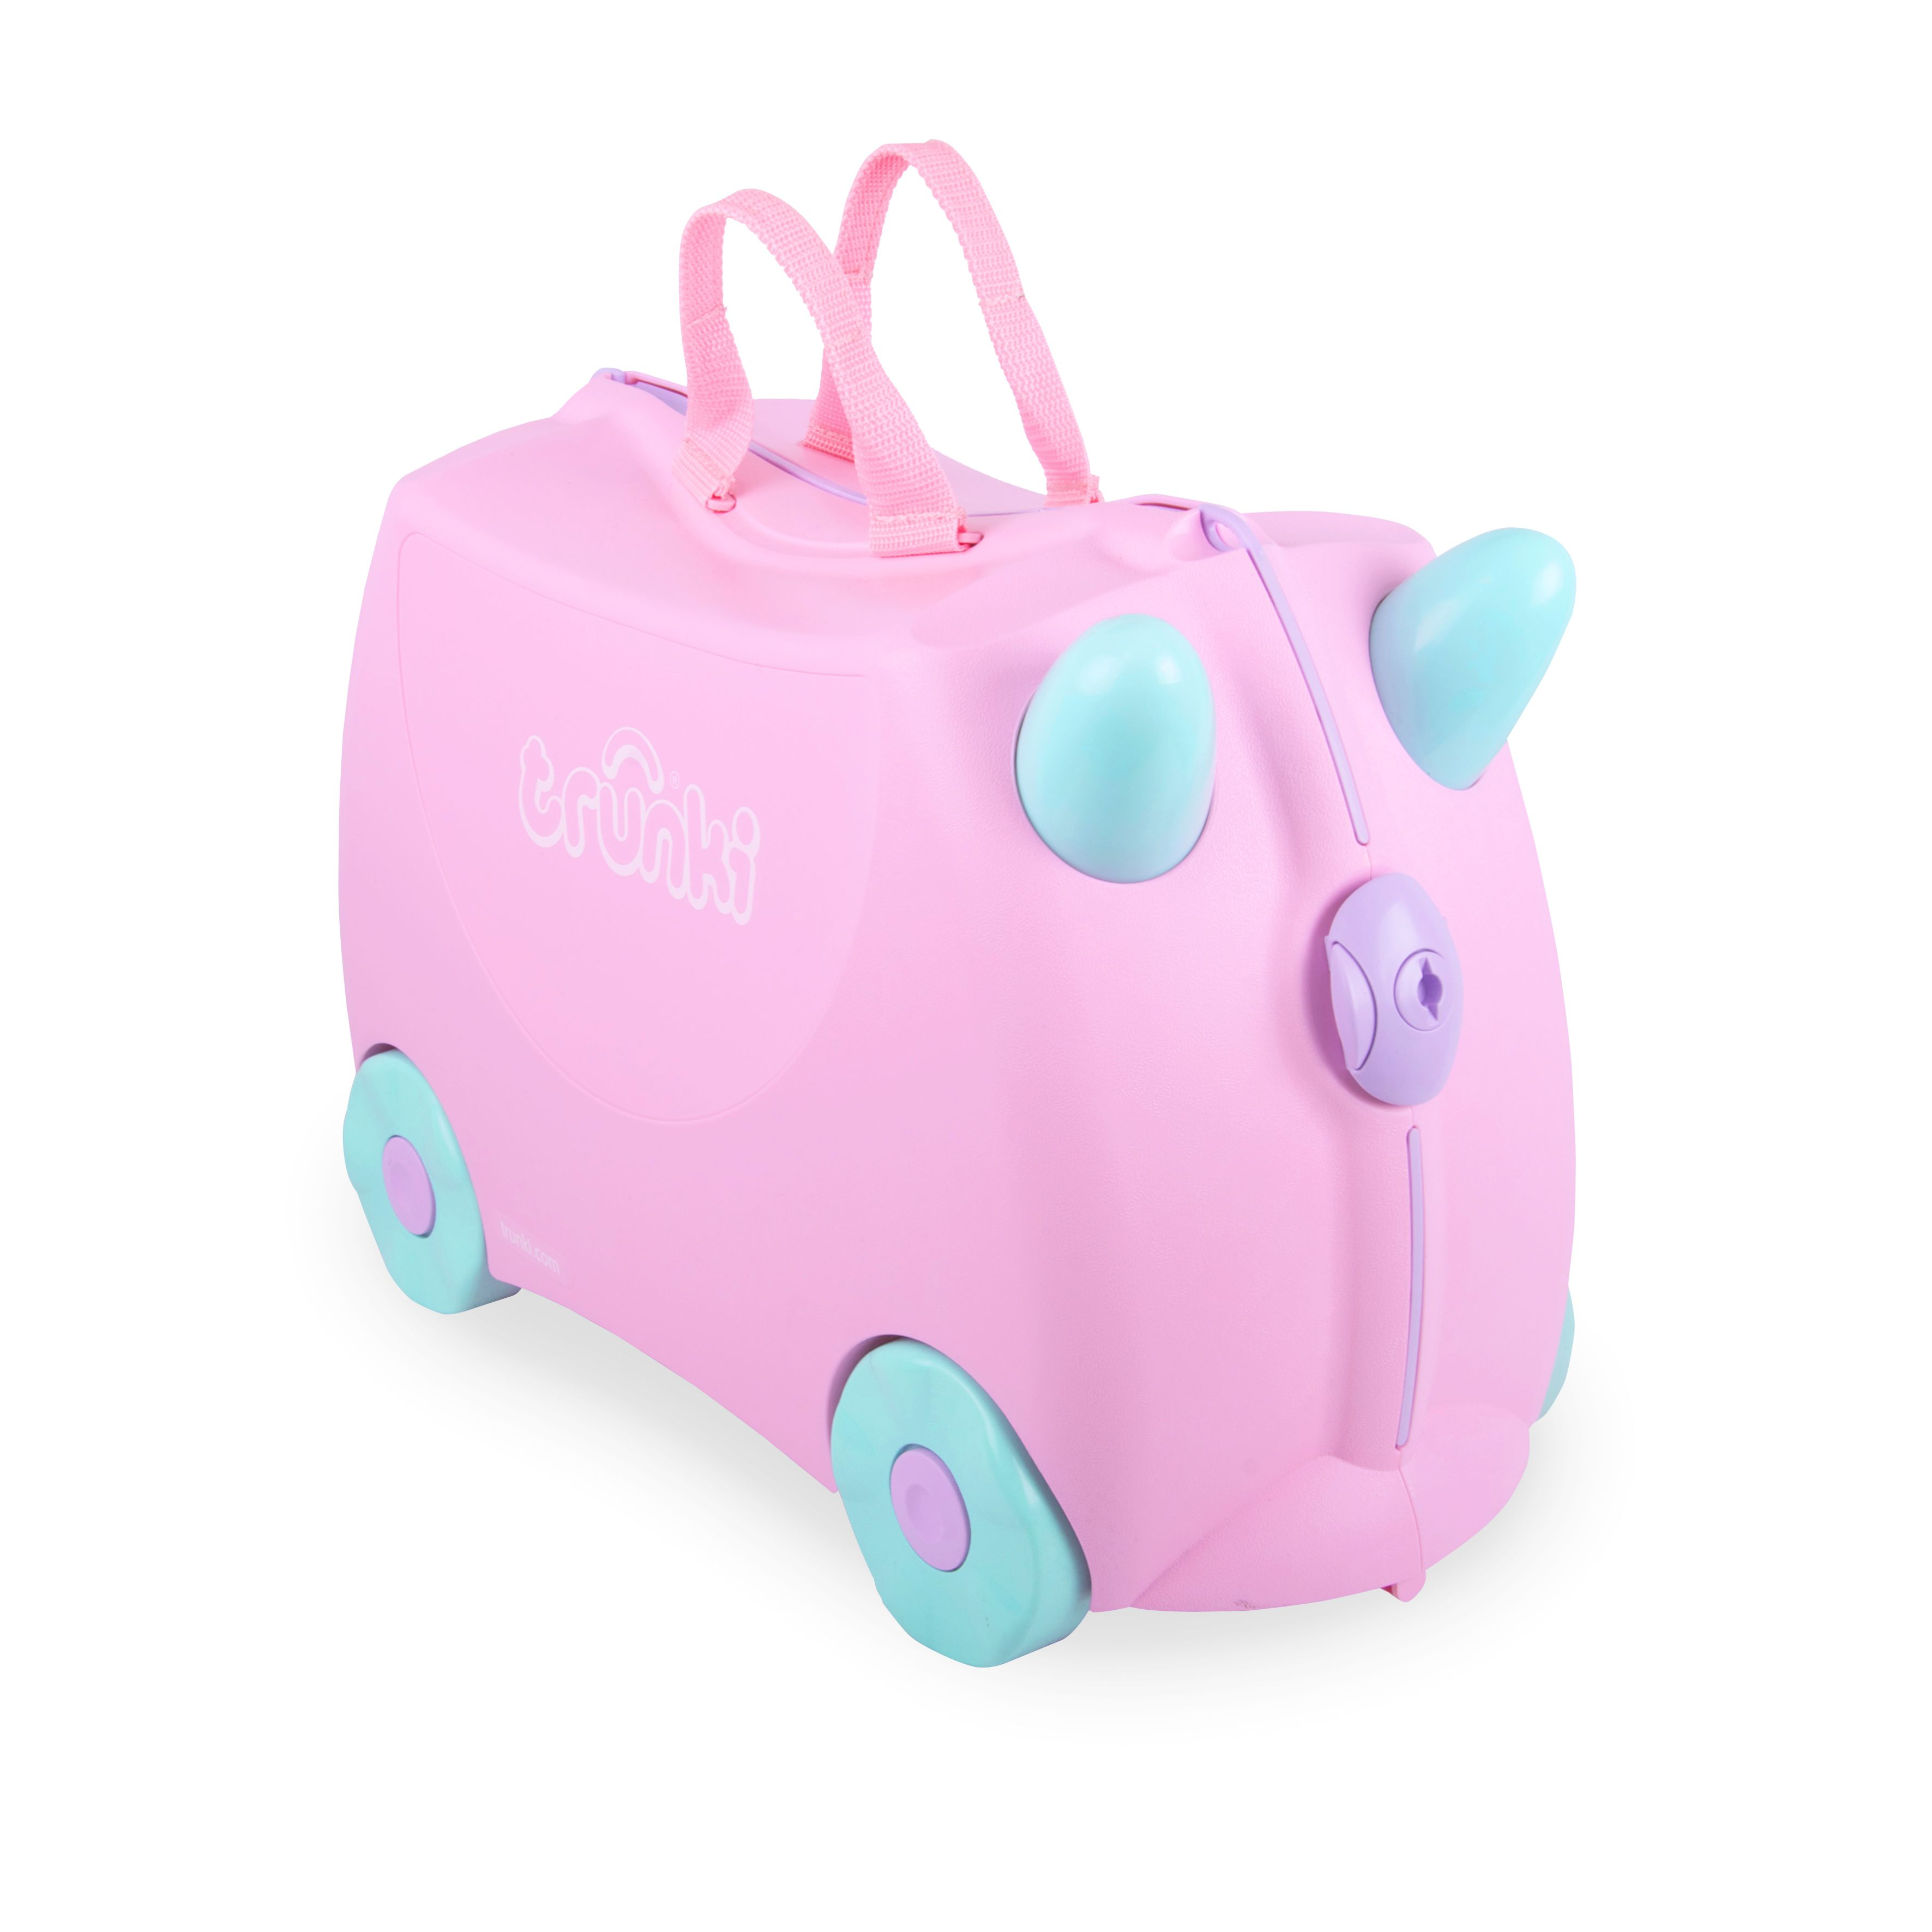 Buy cheap Kids luggage - compare Bags prices for best UK deals